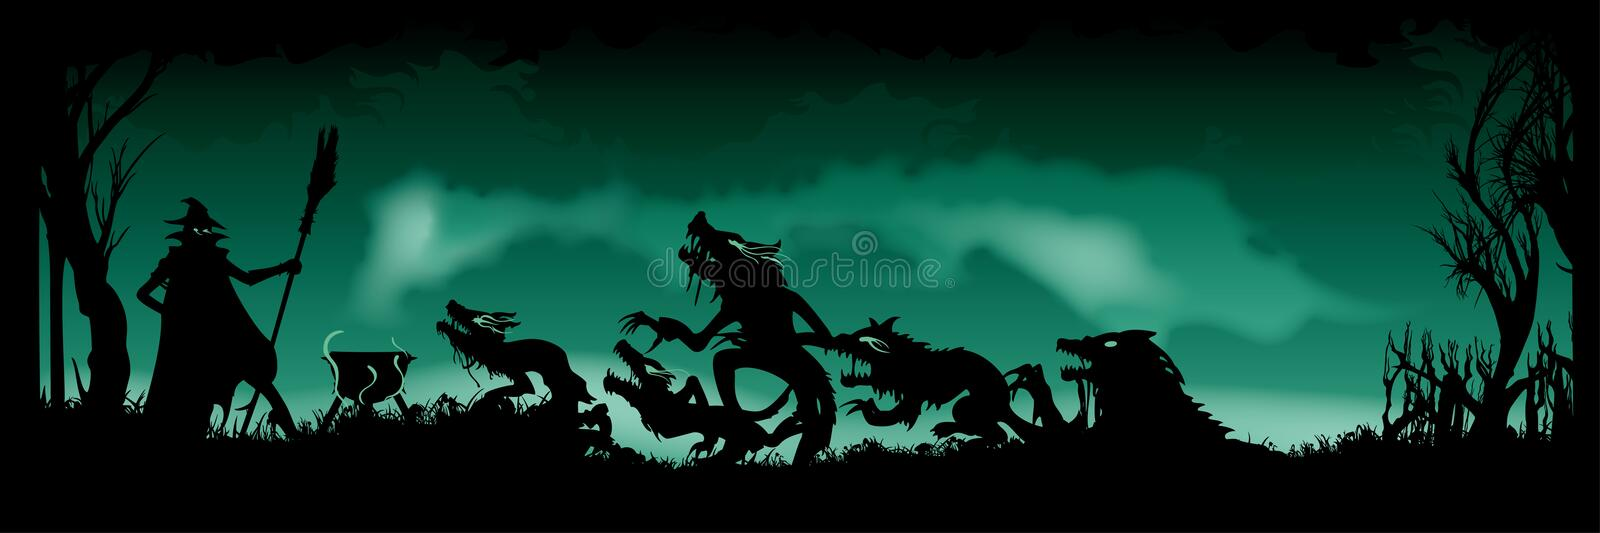 Insegna Witching di Halloween fotografie stock